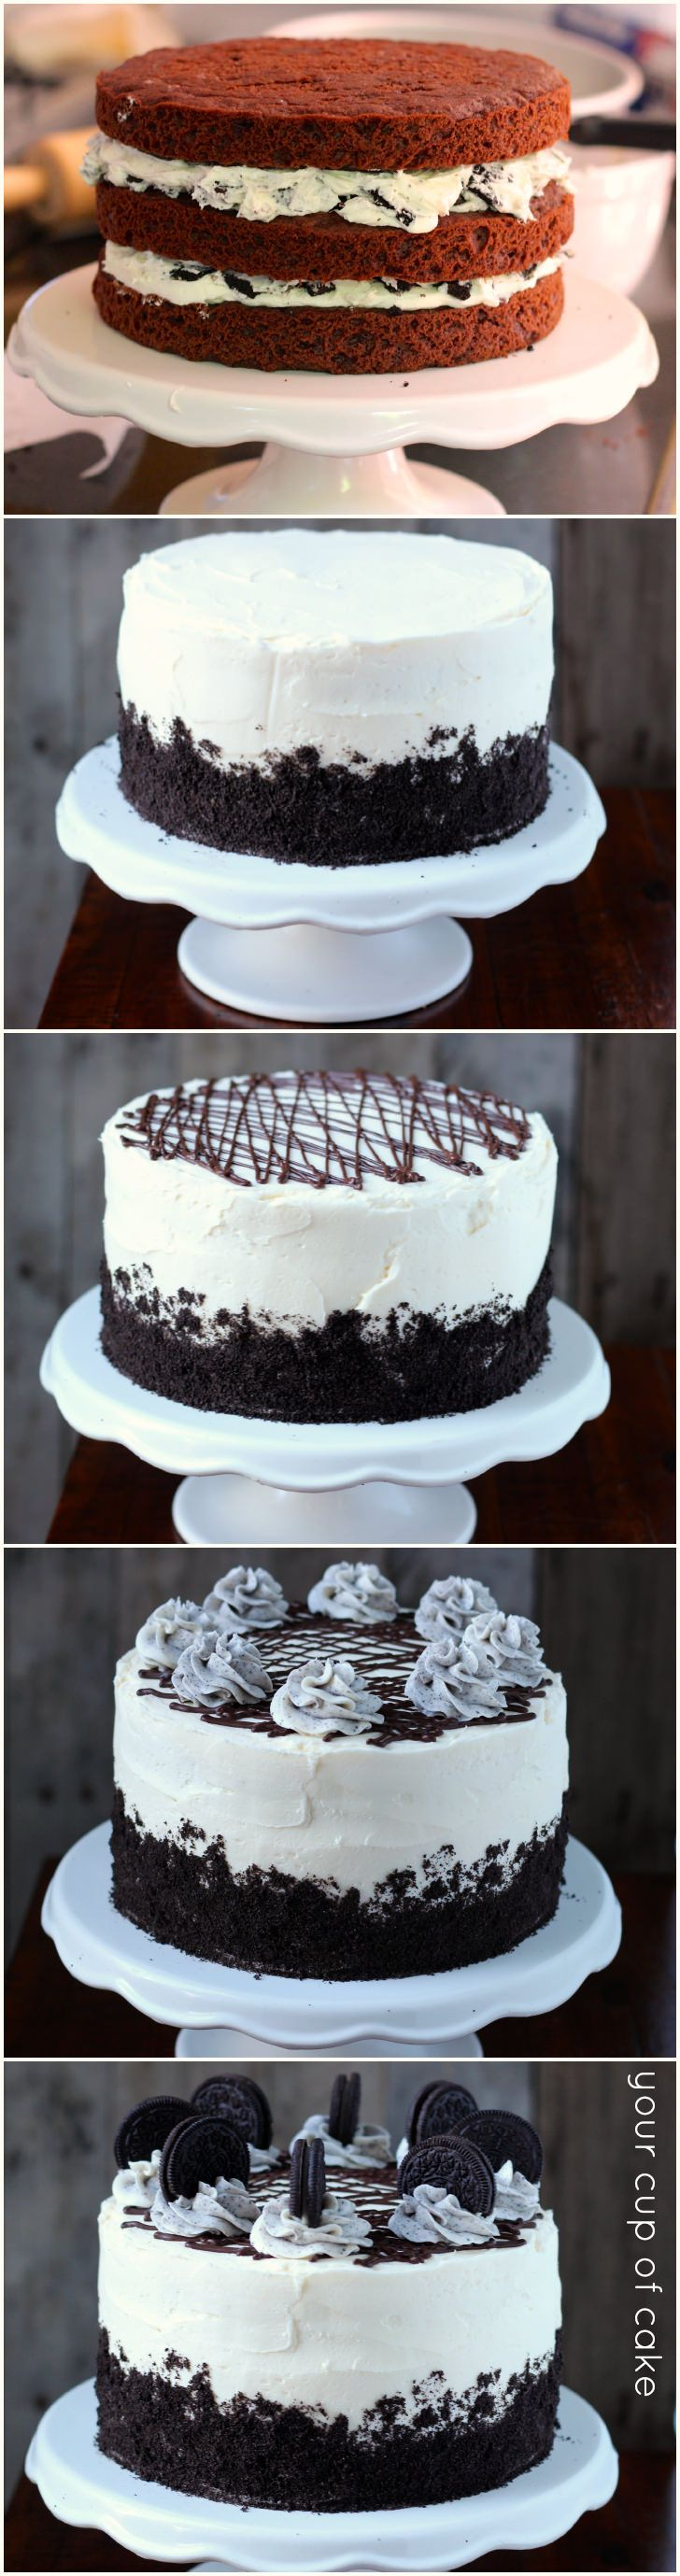 How to make an Oreo Cake. AMYYYYY!! @huebnamy @am